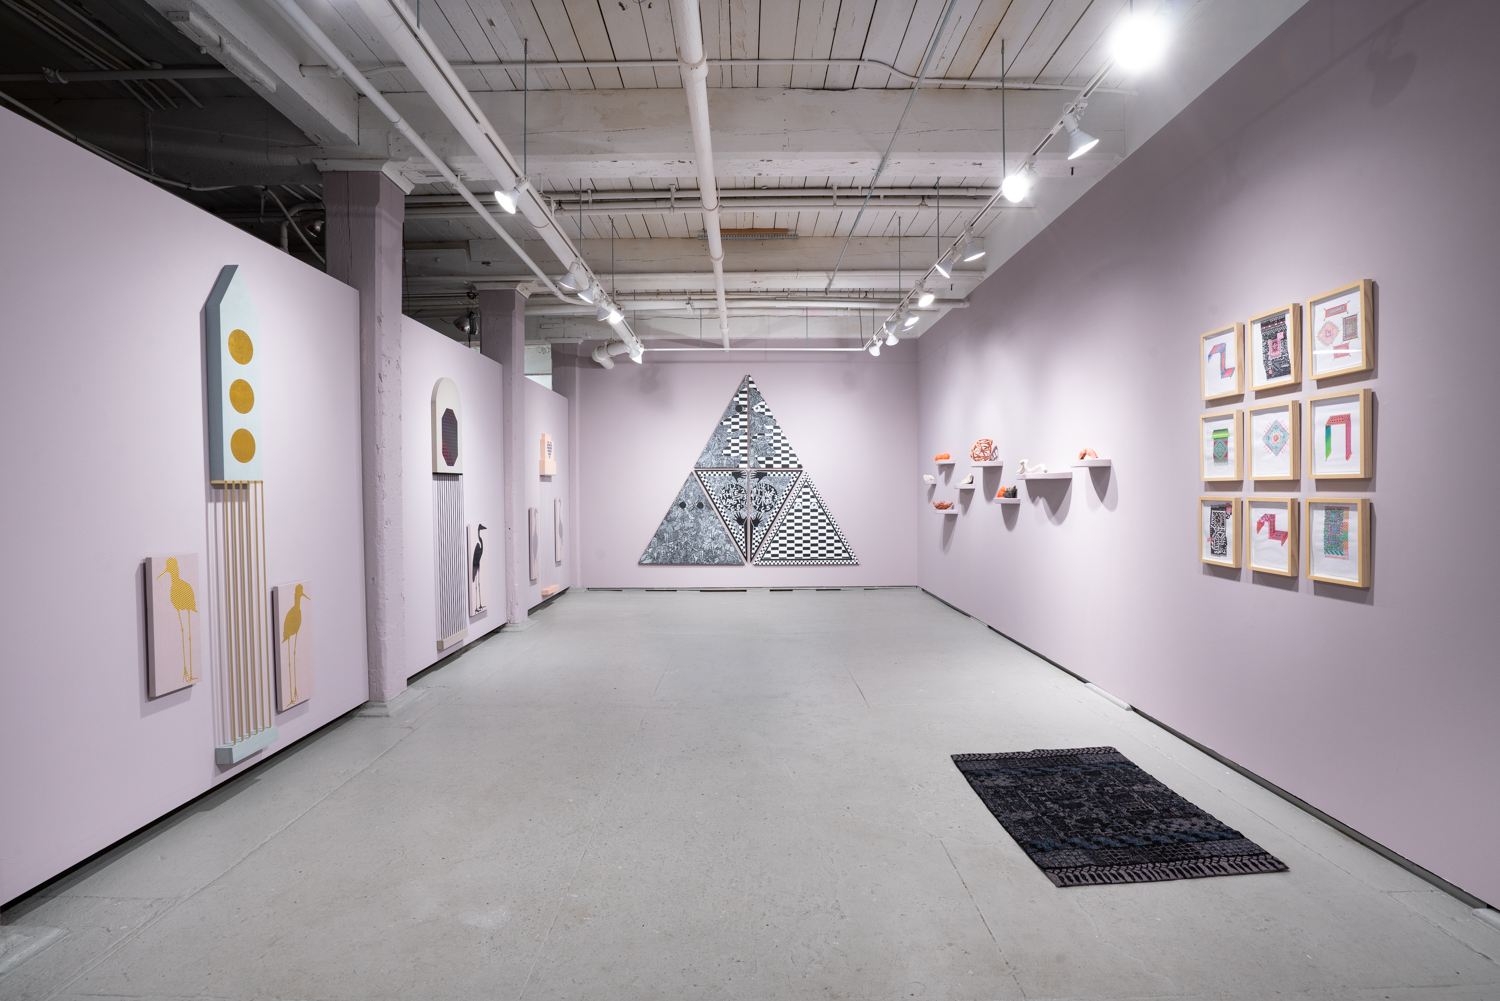 July 27th - August 25th   How Shallow   Sage Dawson, Meghan Grubb, Allison Lacher and Edo Rosenblith from   Monaco   in St Louis